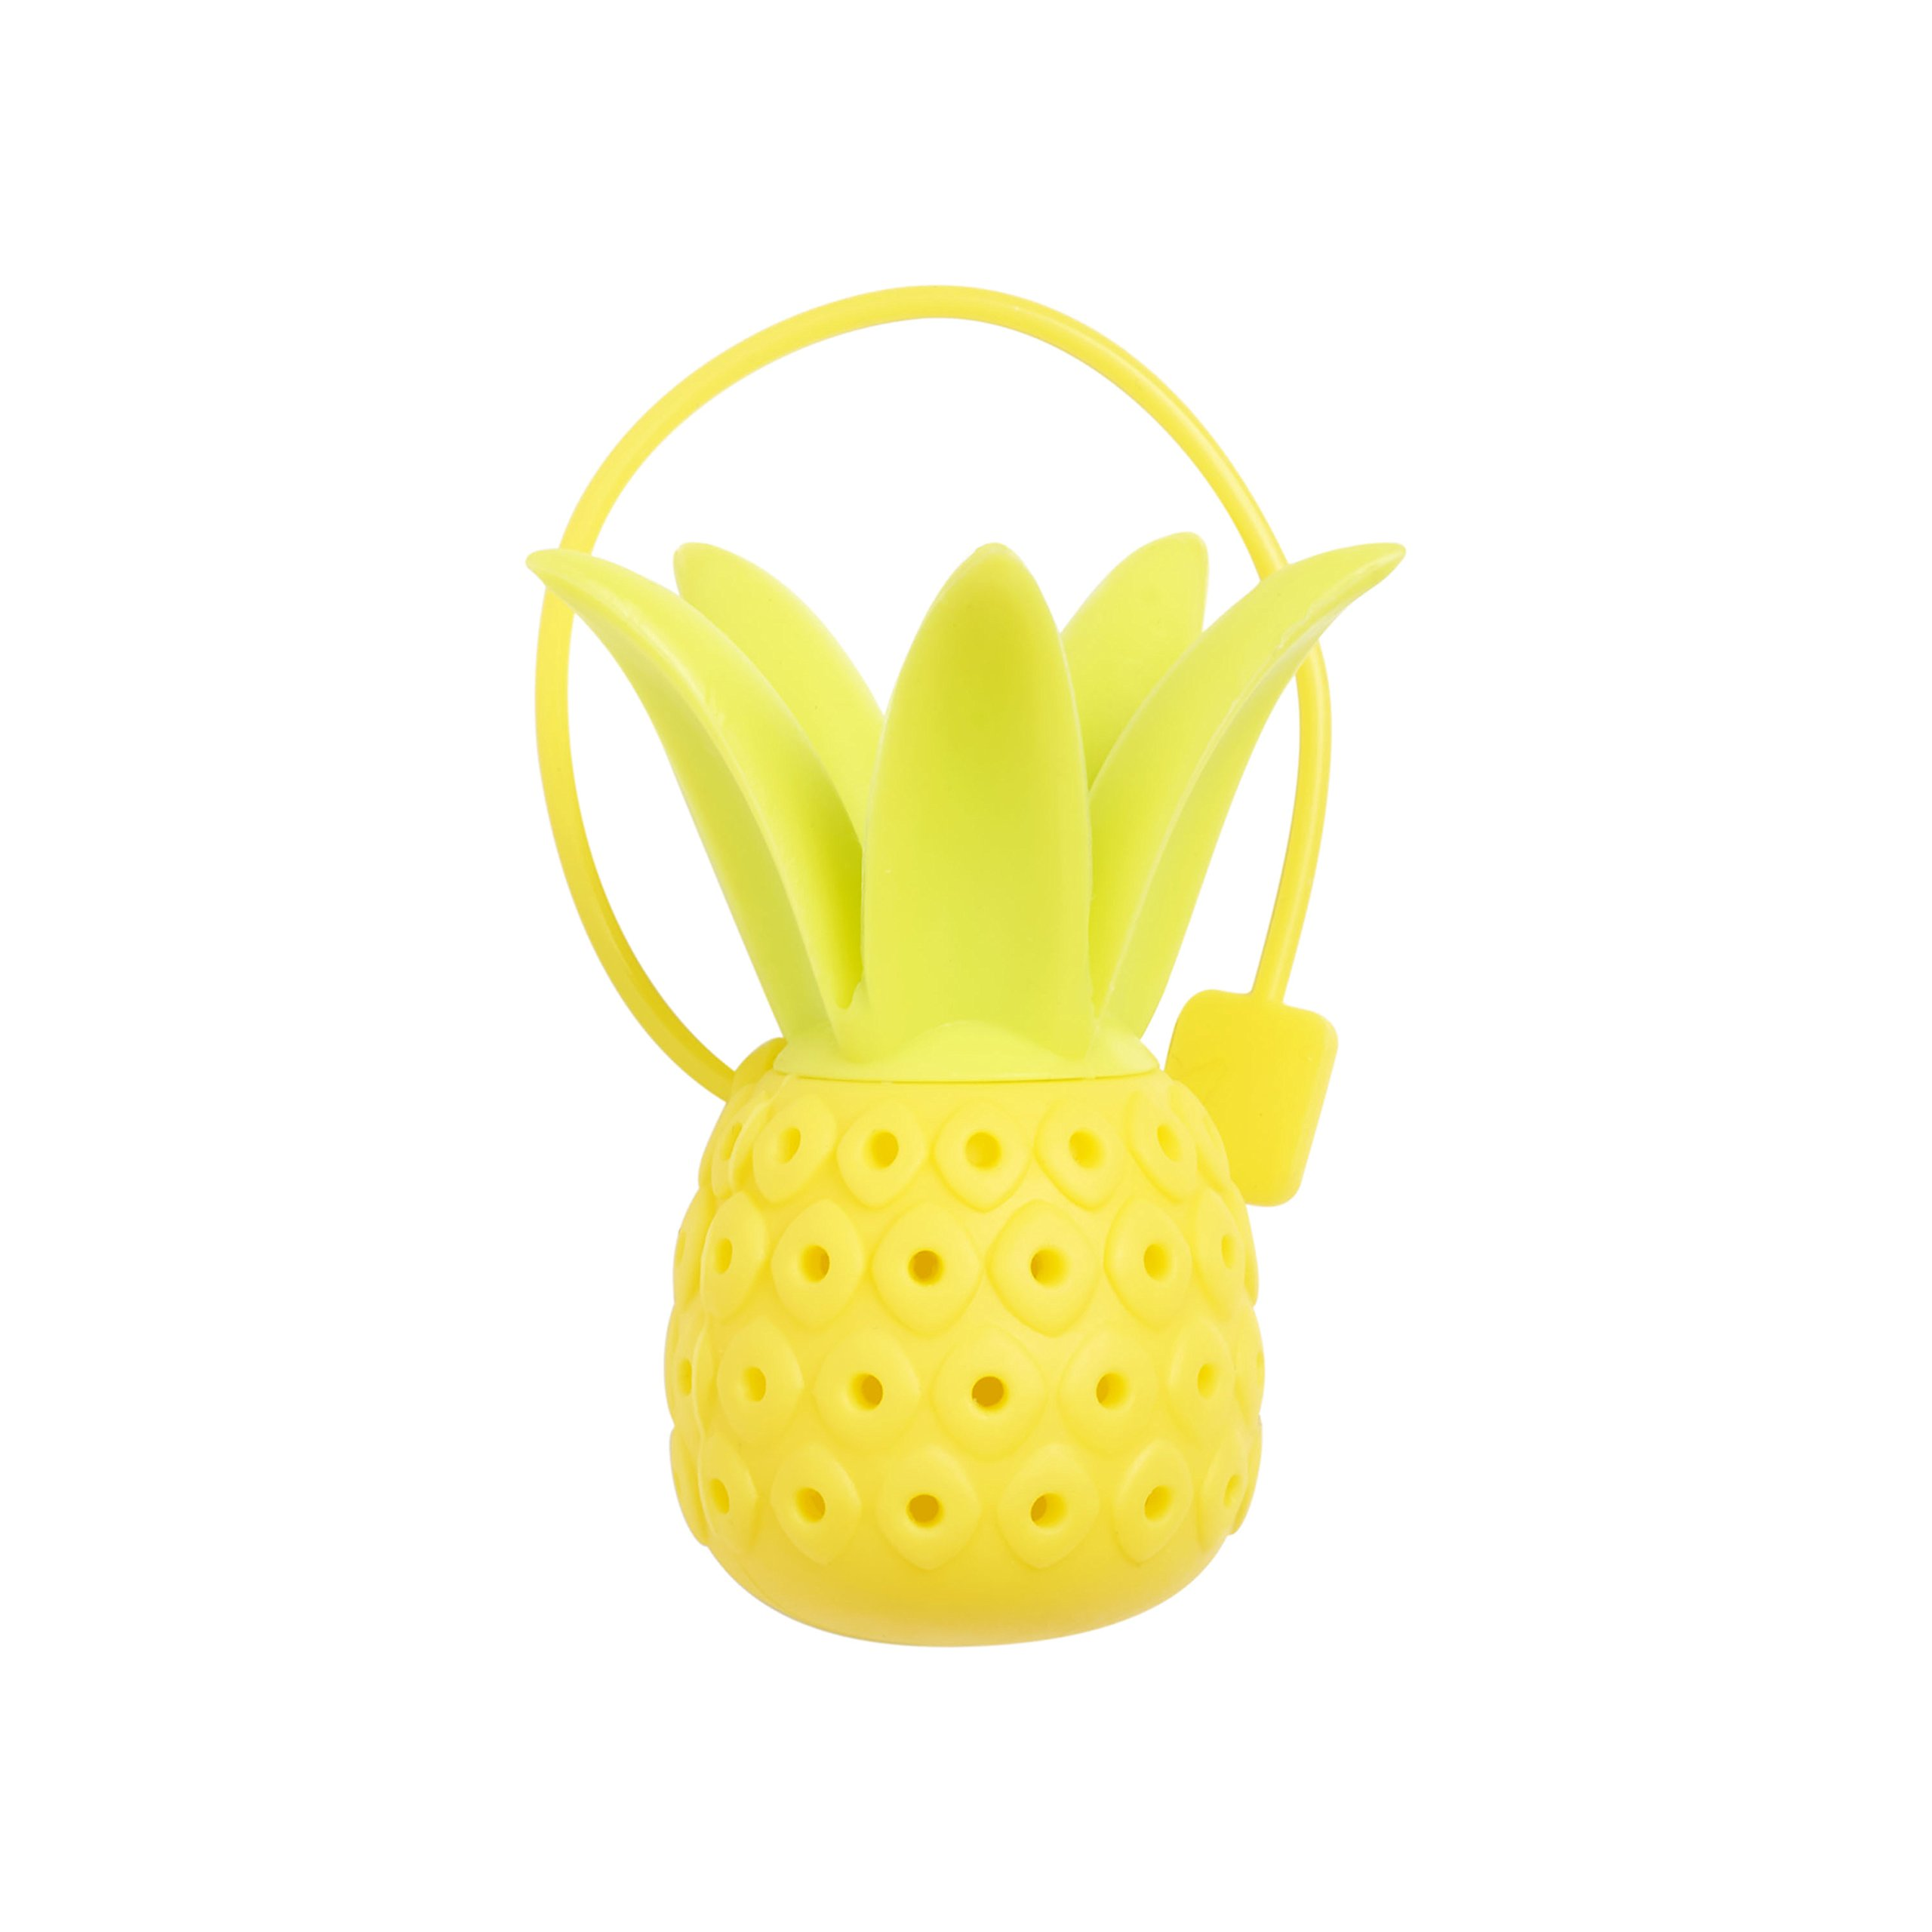 nod products Perky Pineapple Silicone Tea Infuser